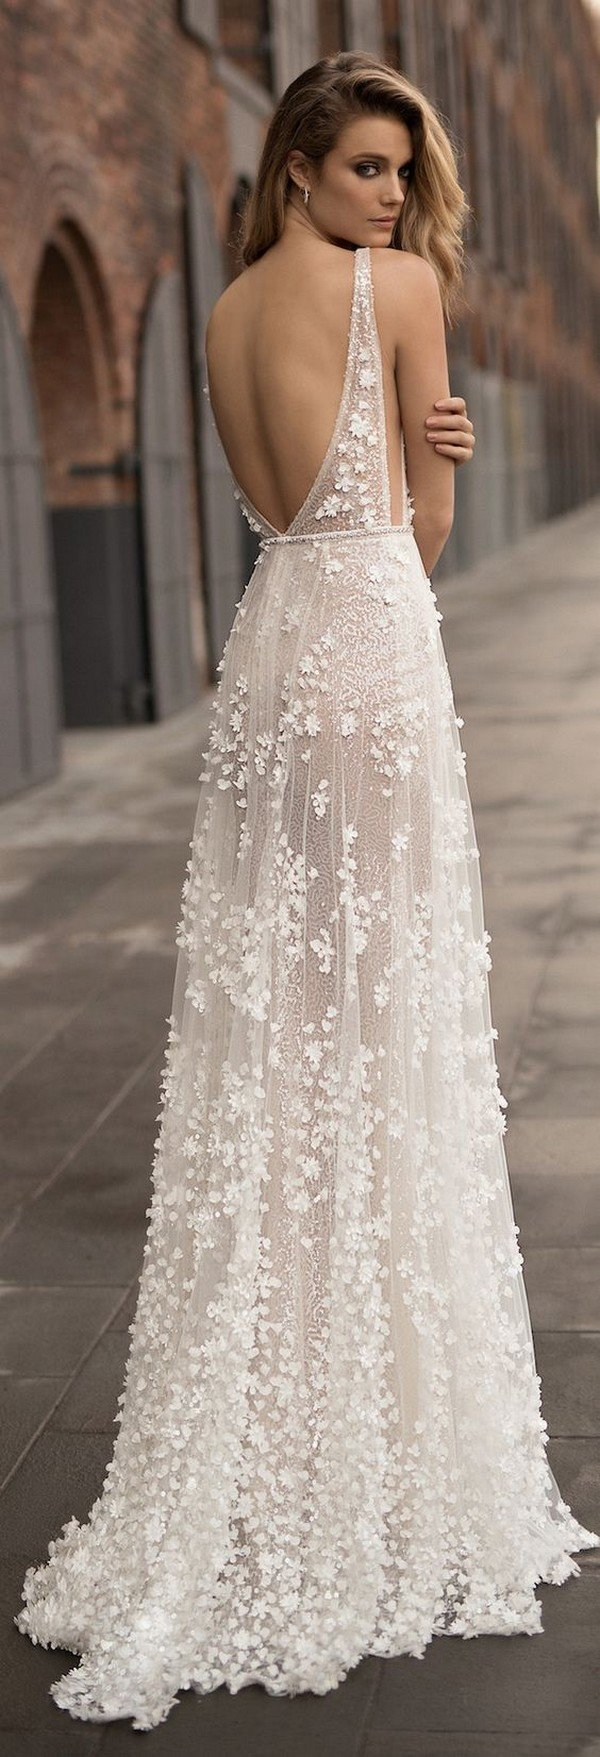 Top 18 Boho Wedding Dresses For 2018 Trends Page 2 Of 2